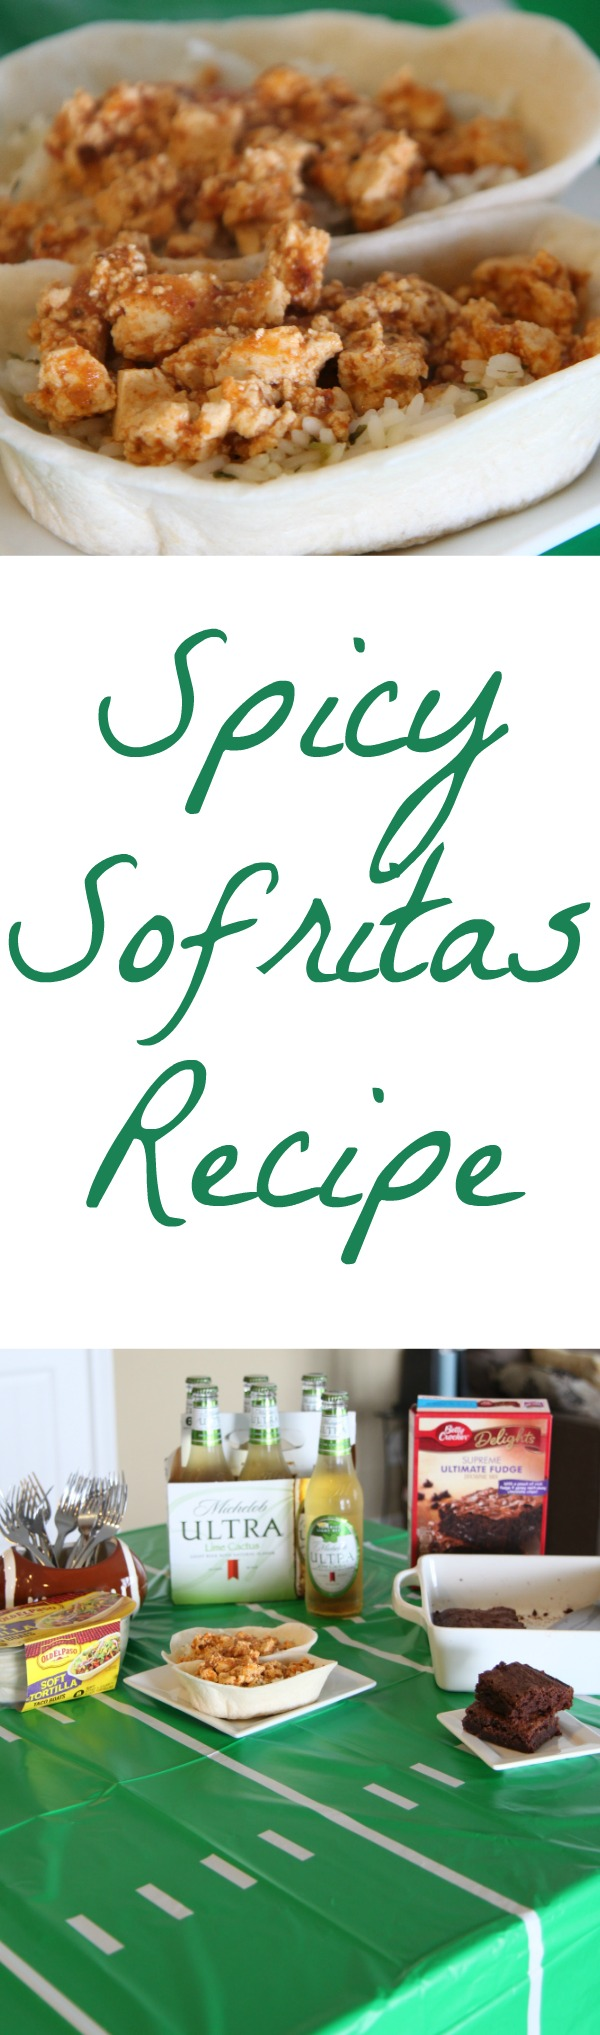 Spicy Sofritas Recipe - Perfect for Game Day Taco Bars